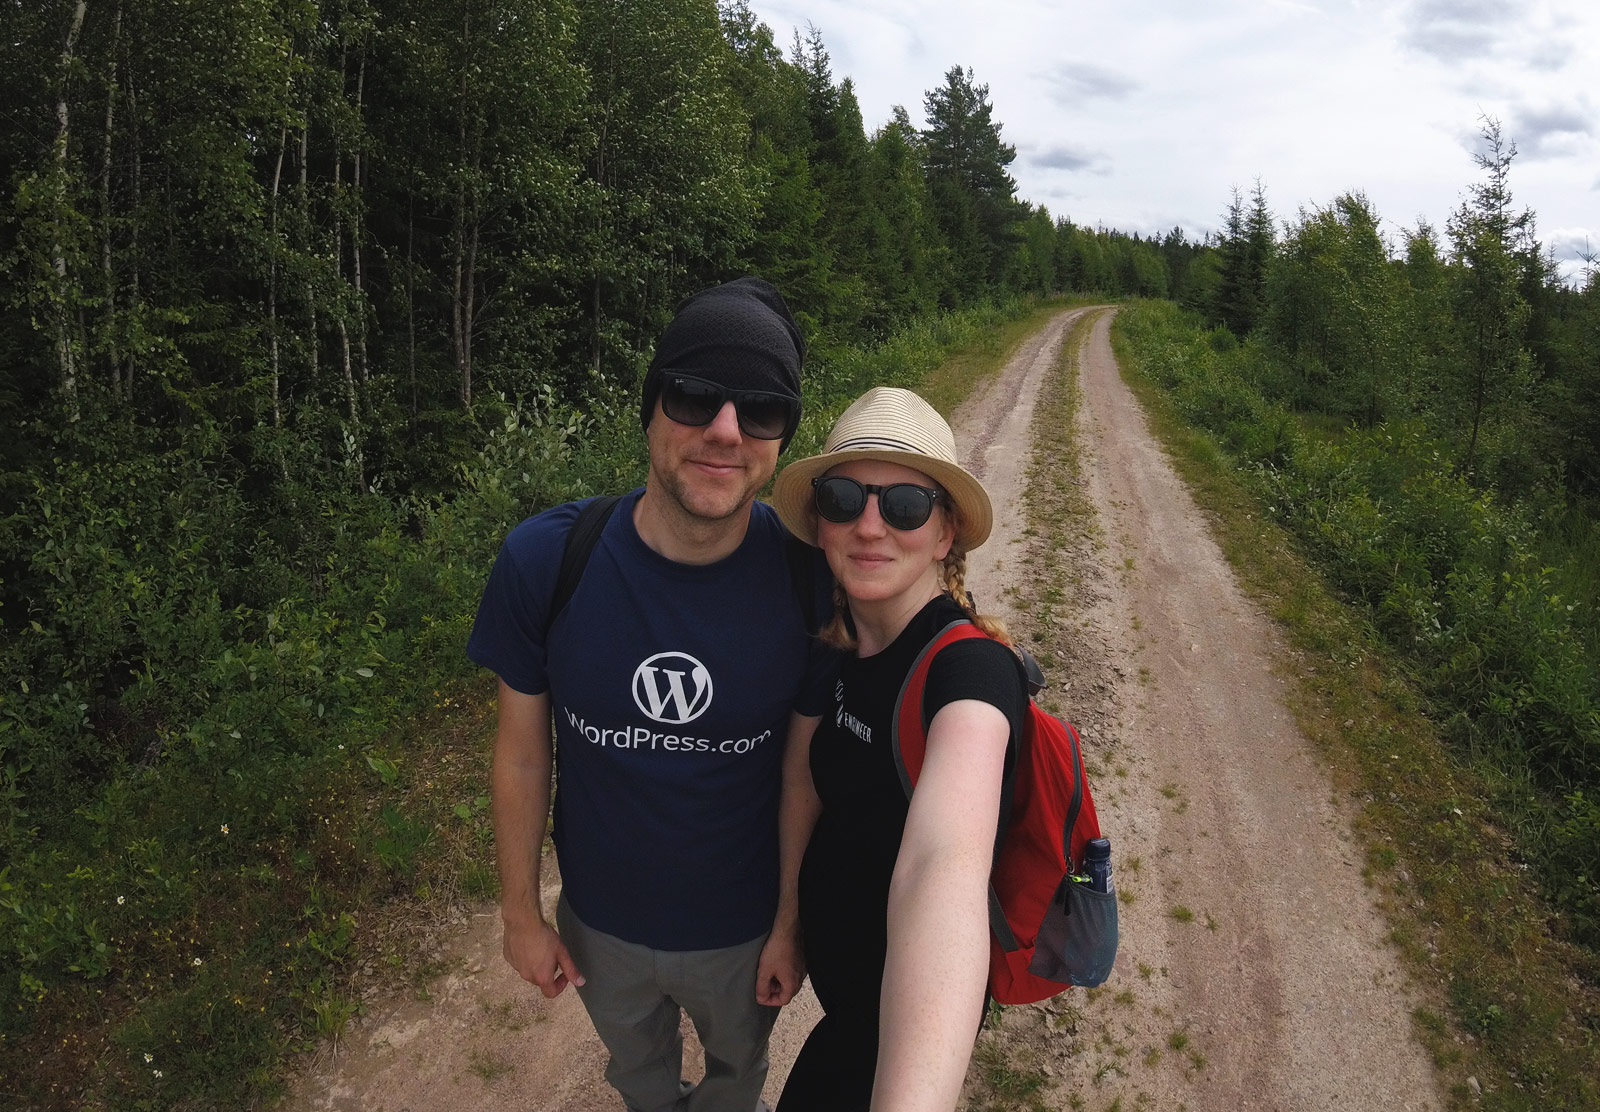 Couple on hiking trail